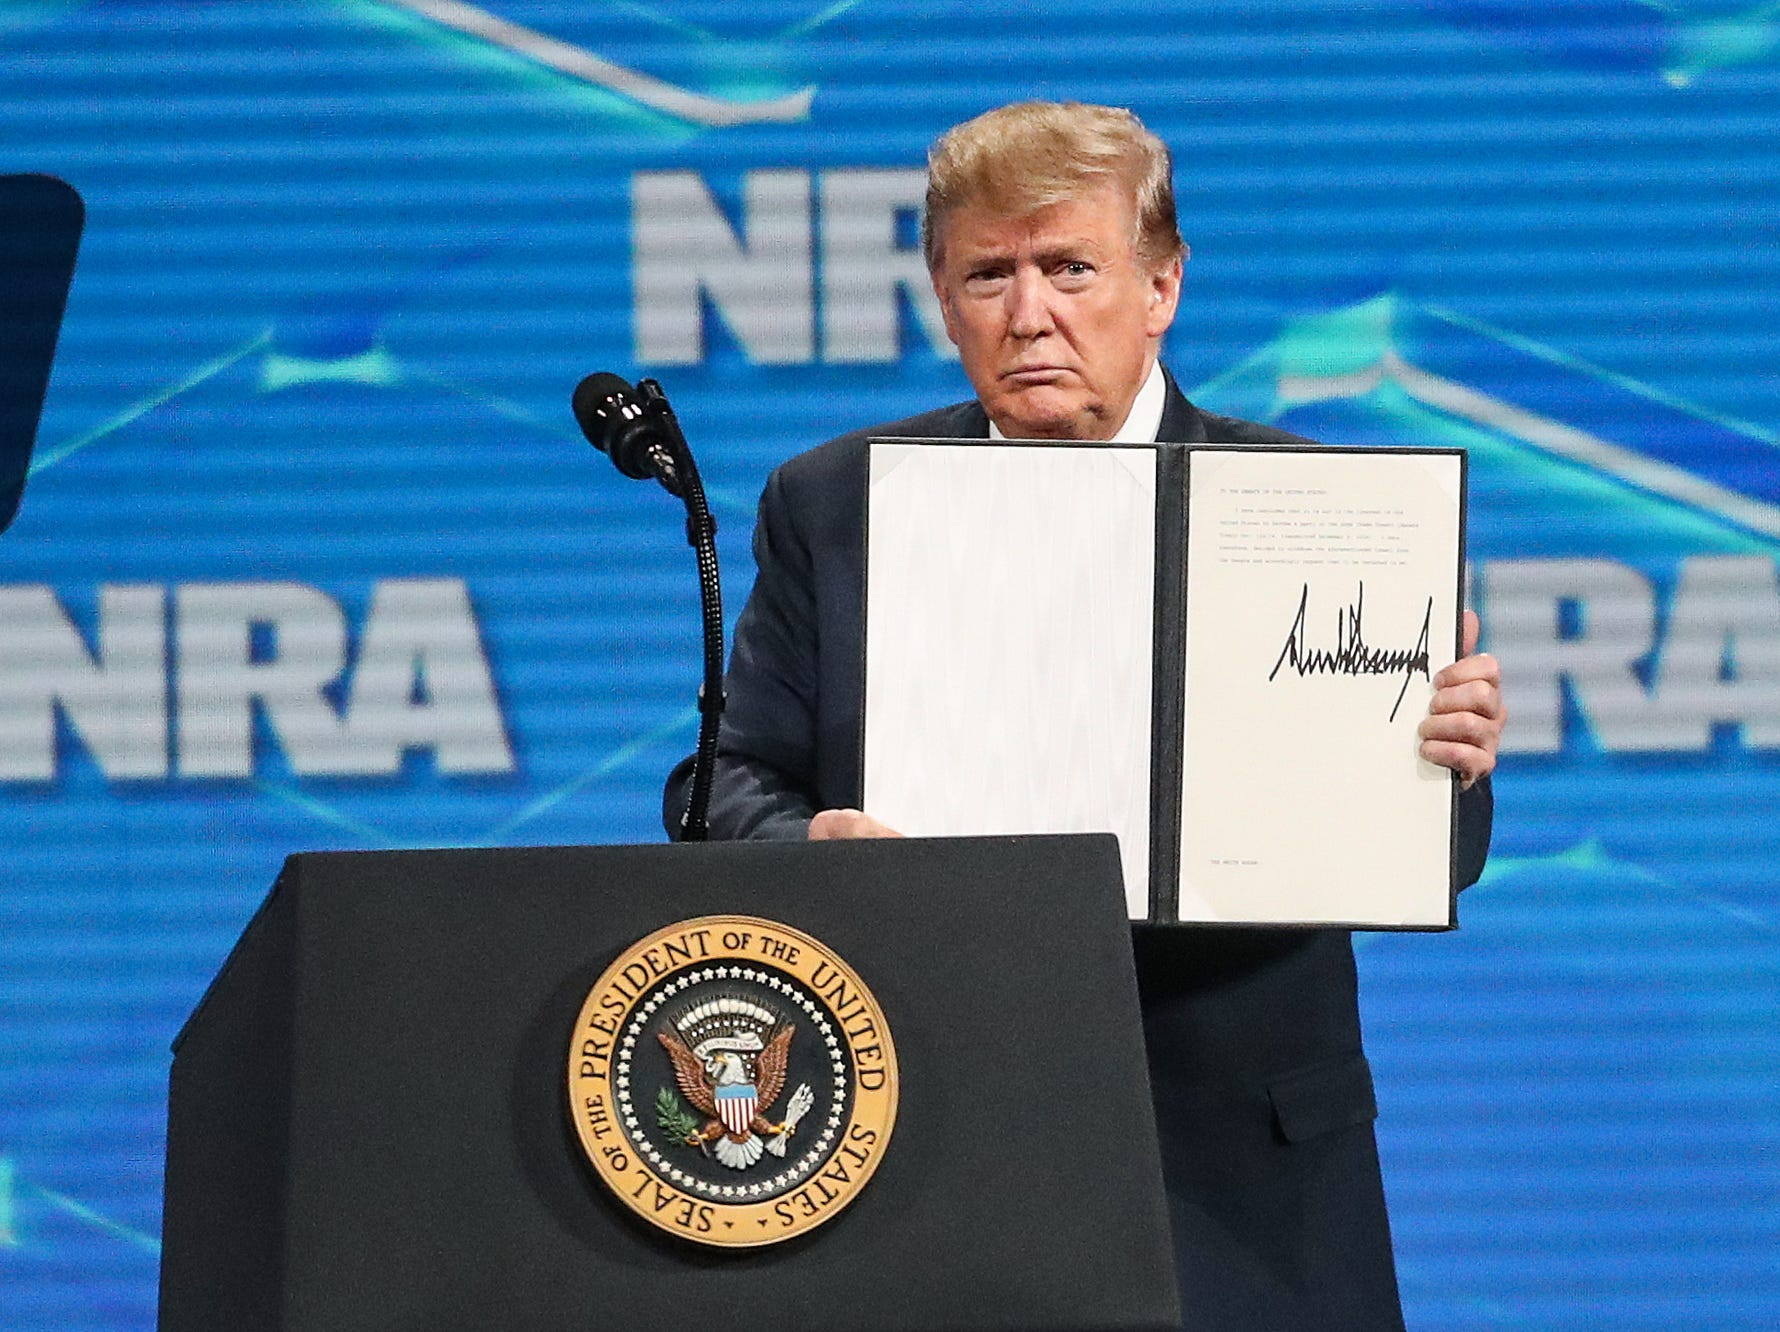 United States President Donald Trump holds up a letter to the Senate, after signing it in front of a crowd during the National Rifle Association Institute for Legislative Action Leadership Forum, Friday, April 26, 2019, at Lucas Oil Stadium in Indianapolis. The letter informed the Senate of his intent to remove the United States signature from the UN Arms Trade Treaty.